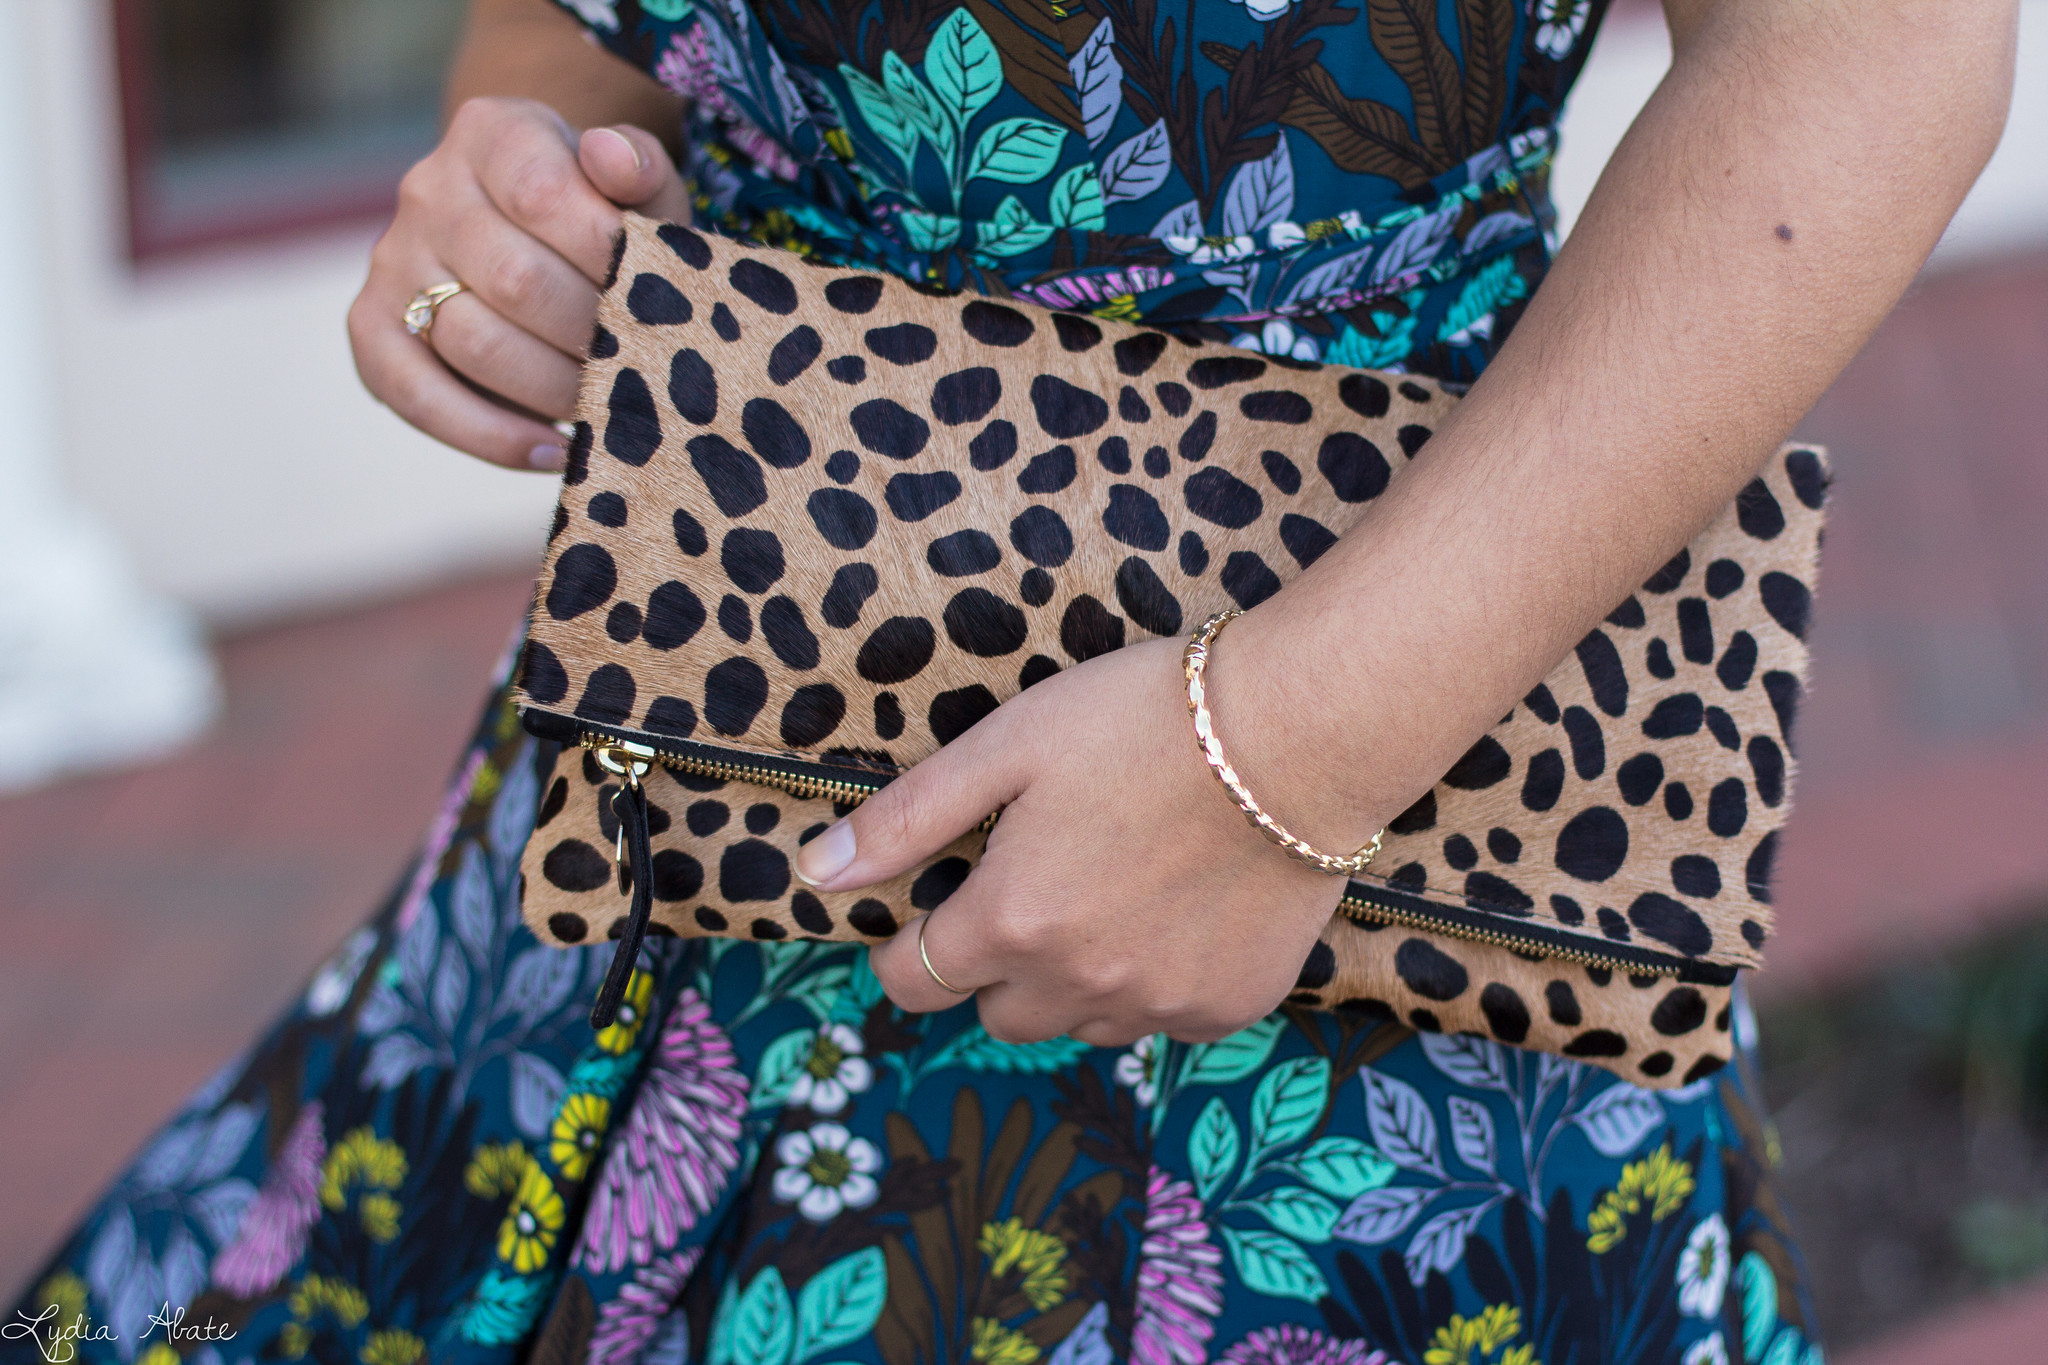 J.Crew X Abigail Borg shirtdress, leopard clutch, coach pumps-7.jpg